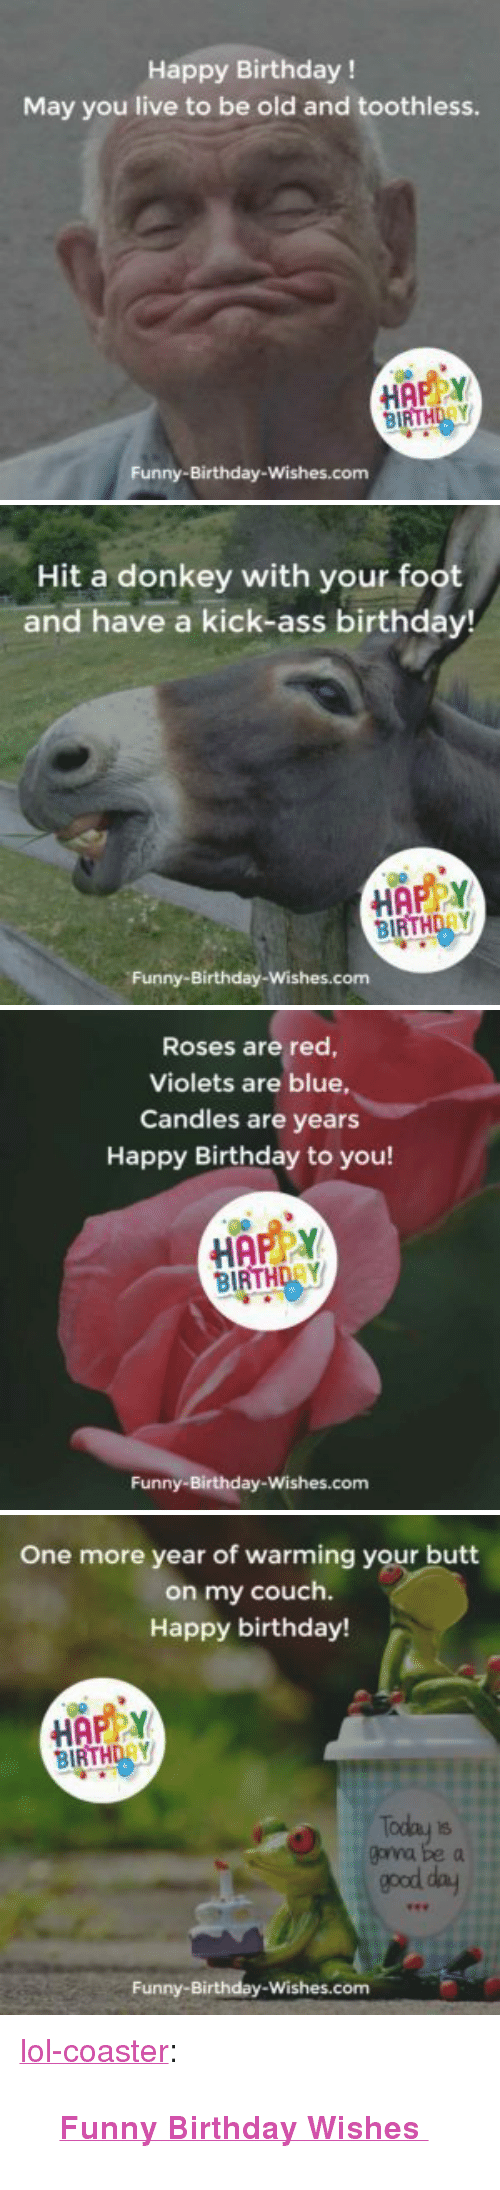 """happy birthday funny: Happy Birthday !  May you live to be old and toothless.  HAPPY  BIRTHDAY  Funny-Birthday-Wishes.com   Hit a donkey with your foot  and have a kick-ass birthday!  HAPY  BIRTHDAY  Funny-Birthday-Wishes.com   Roses are red  Violets are blue,  Candles are years  Happy Birthday to you!  HAPPY  BIRTHDRY  Funny-Birthday-Wishes.com   One more year of warming your butt  on my couch.  Happy birthday!  BIRTHDAY  goyna be a  good day  Funny-Birthday-Wishes.com <p><a href=""""http://lol-coaster.tumblr.com/post/153925909627/funny-birthday-wishes"""" class=""""tumblr_blog"""">lol-coaster</a>:</p><blockquote><p>  <a href=""""http://funny-birthday-wishes.com""""><b>Funny Birthday Wishes  </b></a><br/></p></blockquote>"""